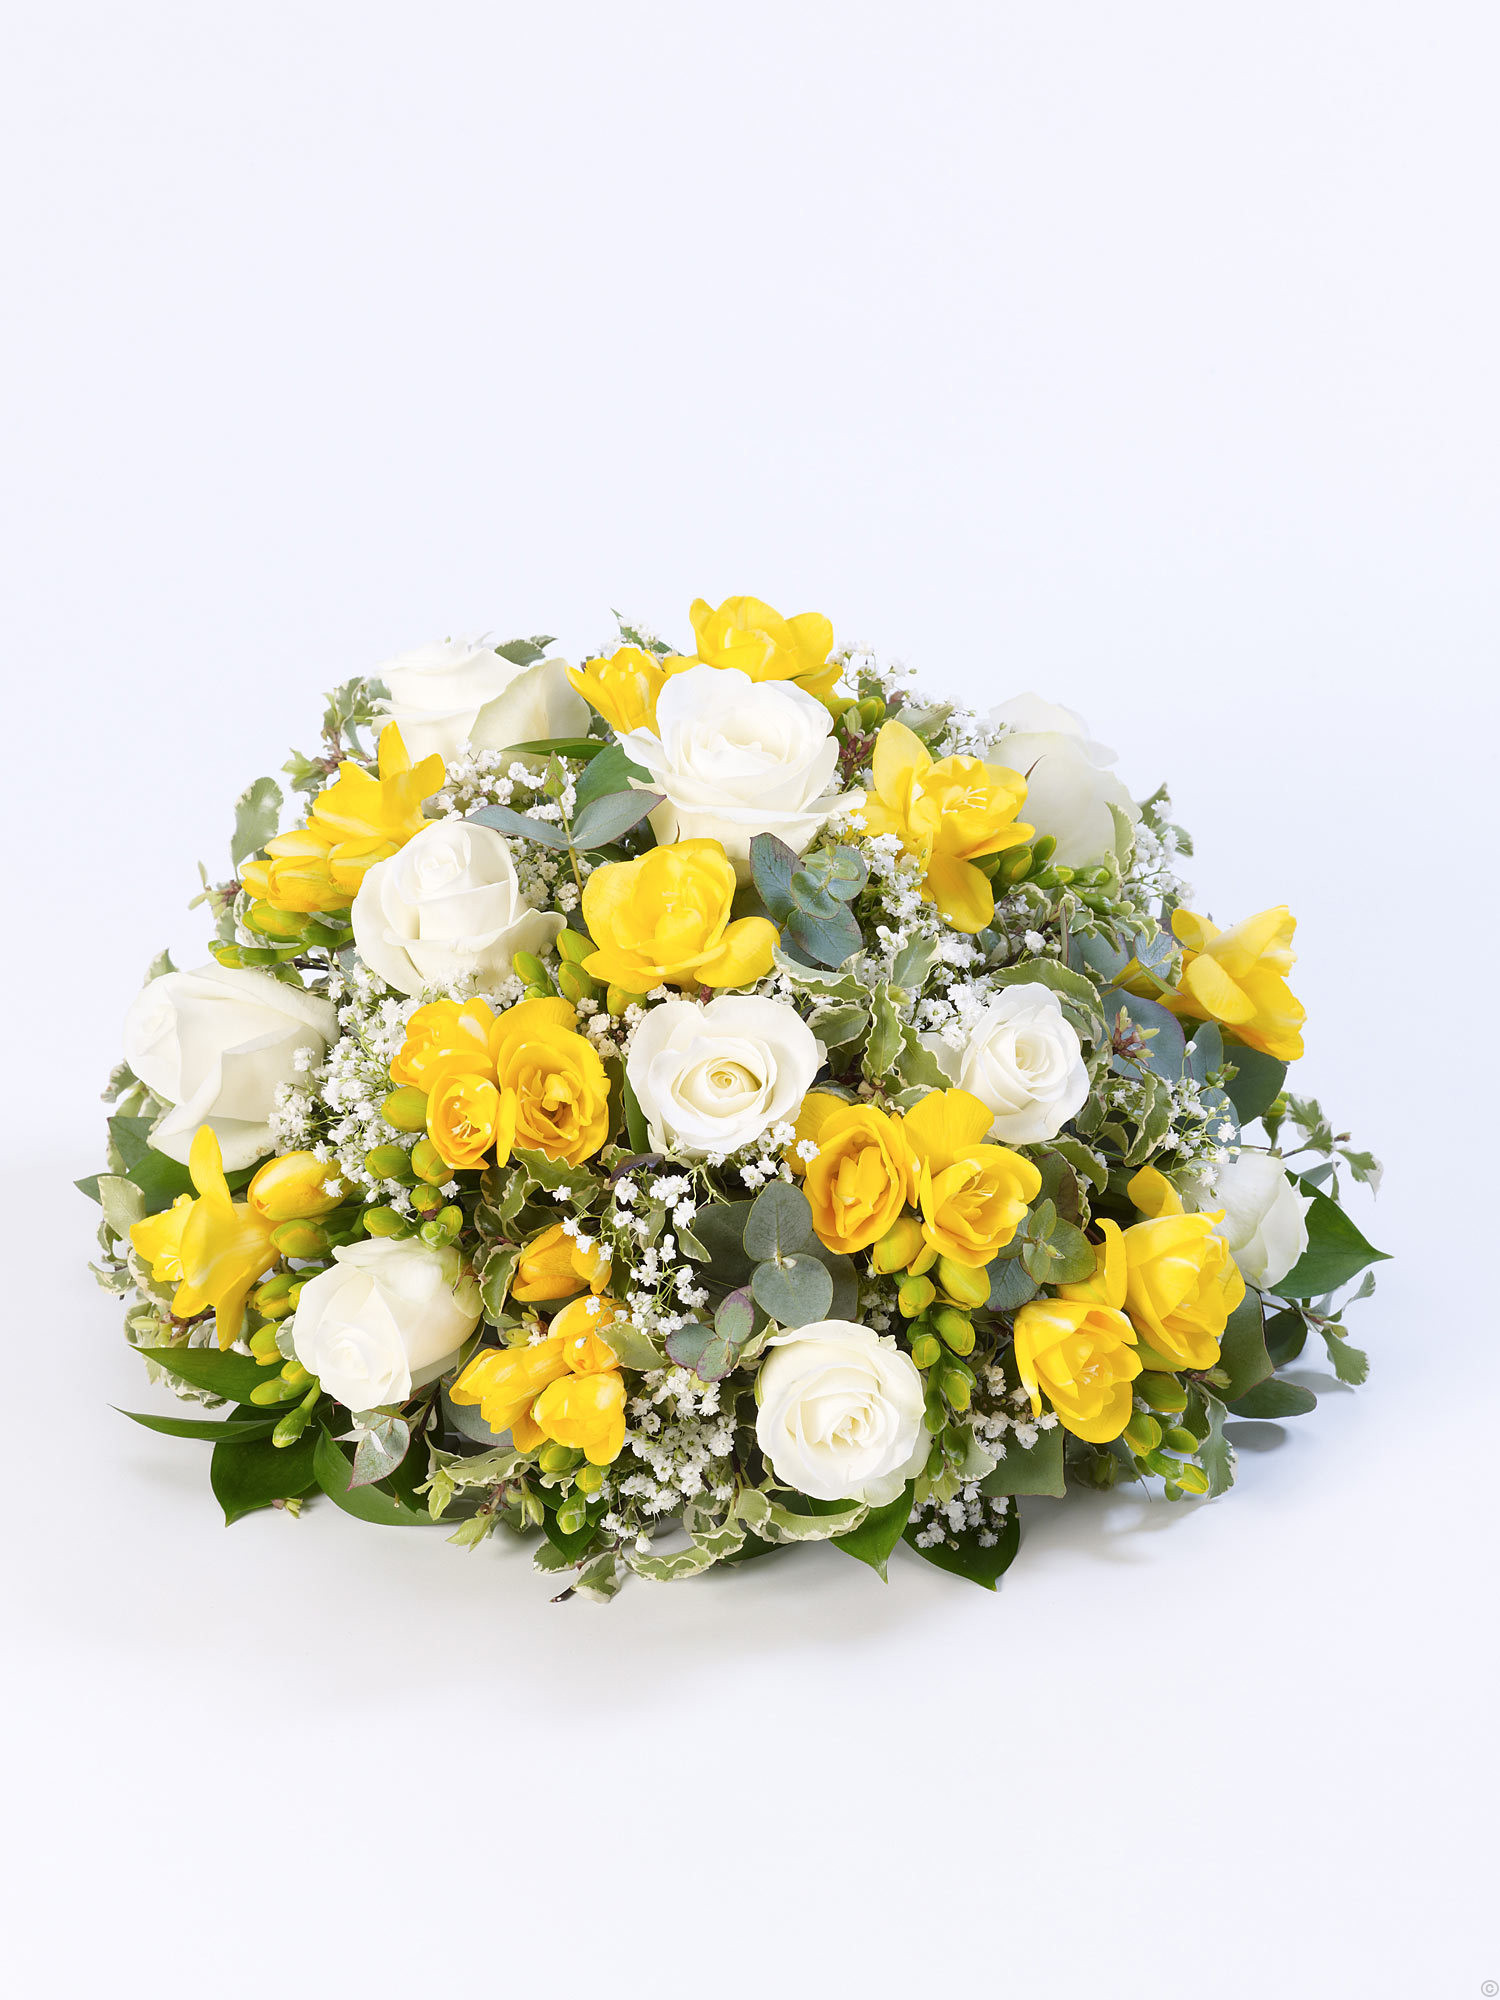 Sikh funeral flowers choice image flower wallpaper hd sikh funeral flowers images flower wallpaper hd sikh funeral flowers choice image flower wallpaper hd funeral izmirmasajfo